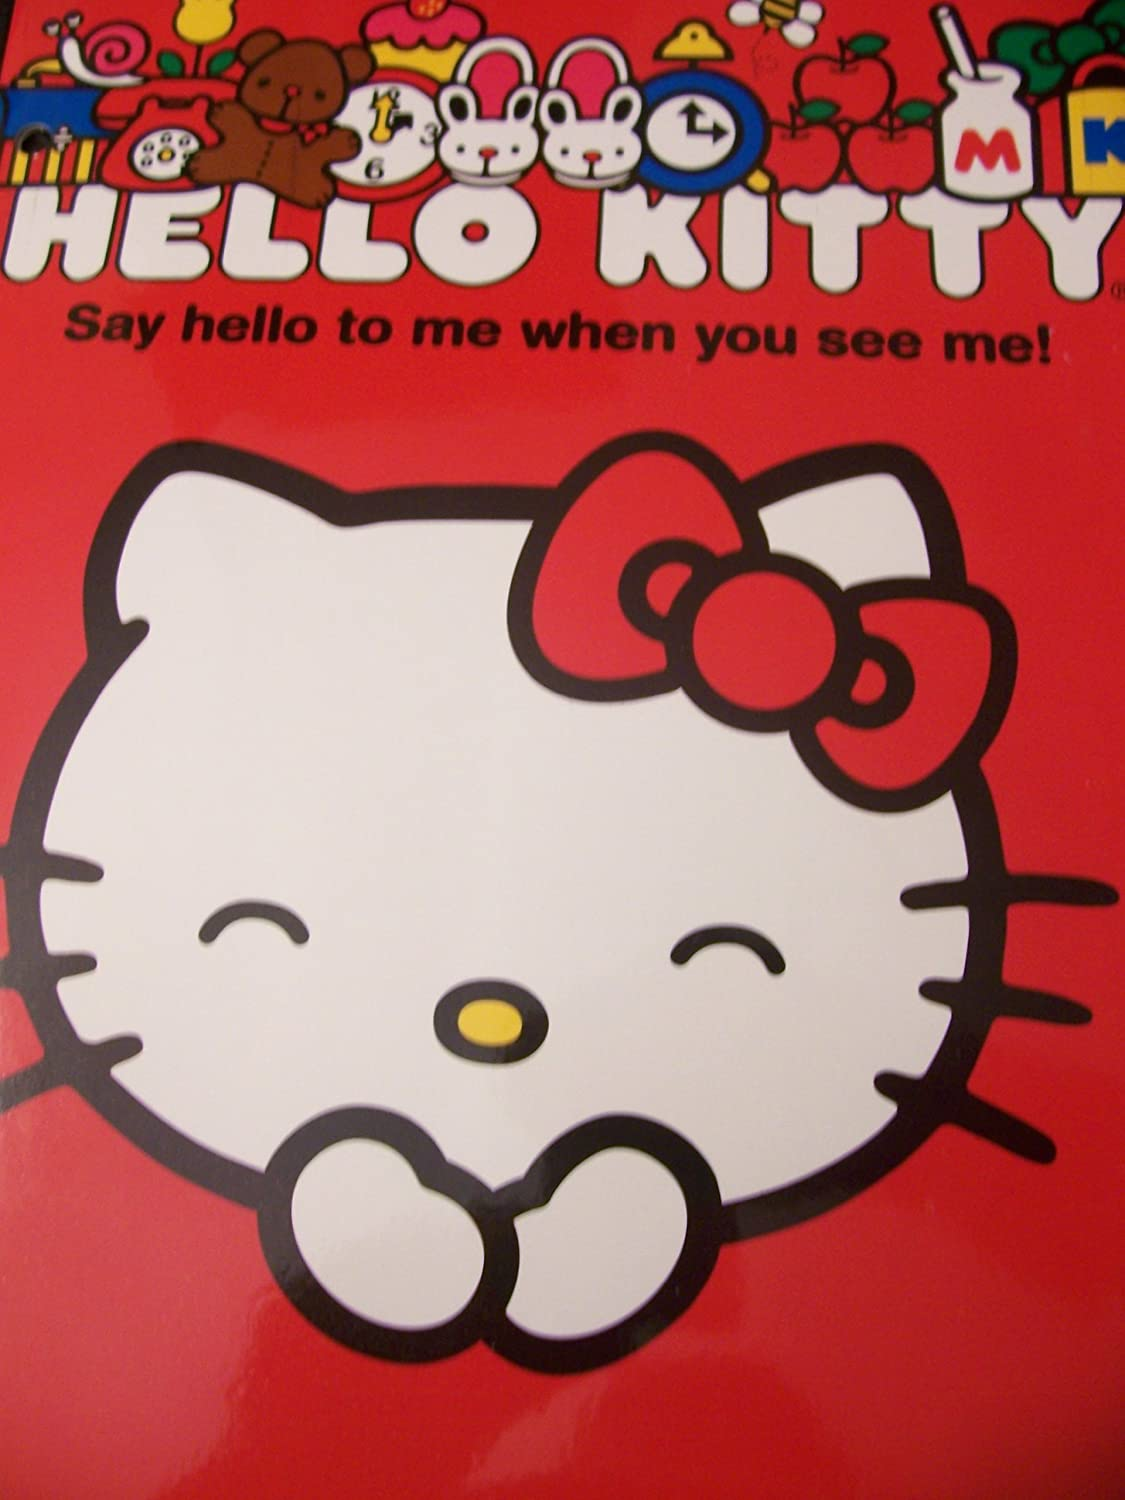 Kitty Folders Hello Kitty Folder by Mead